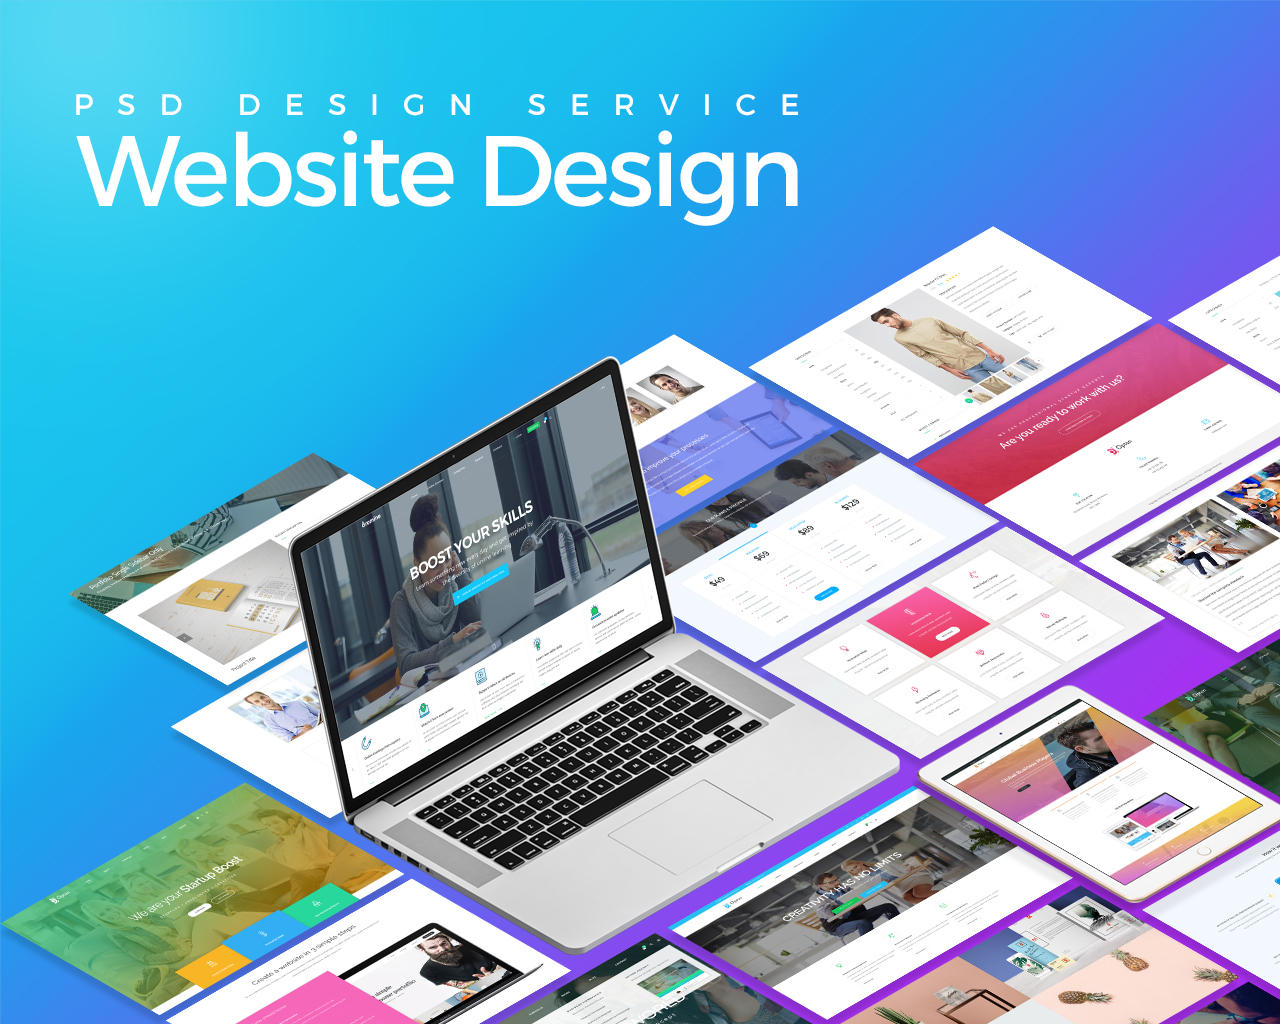 psd website design service by kl webmedia on envato studio